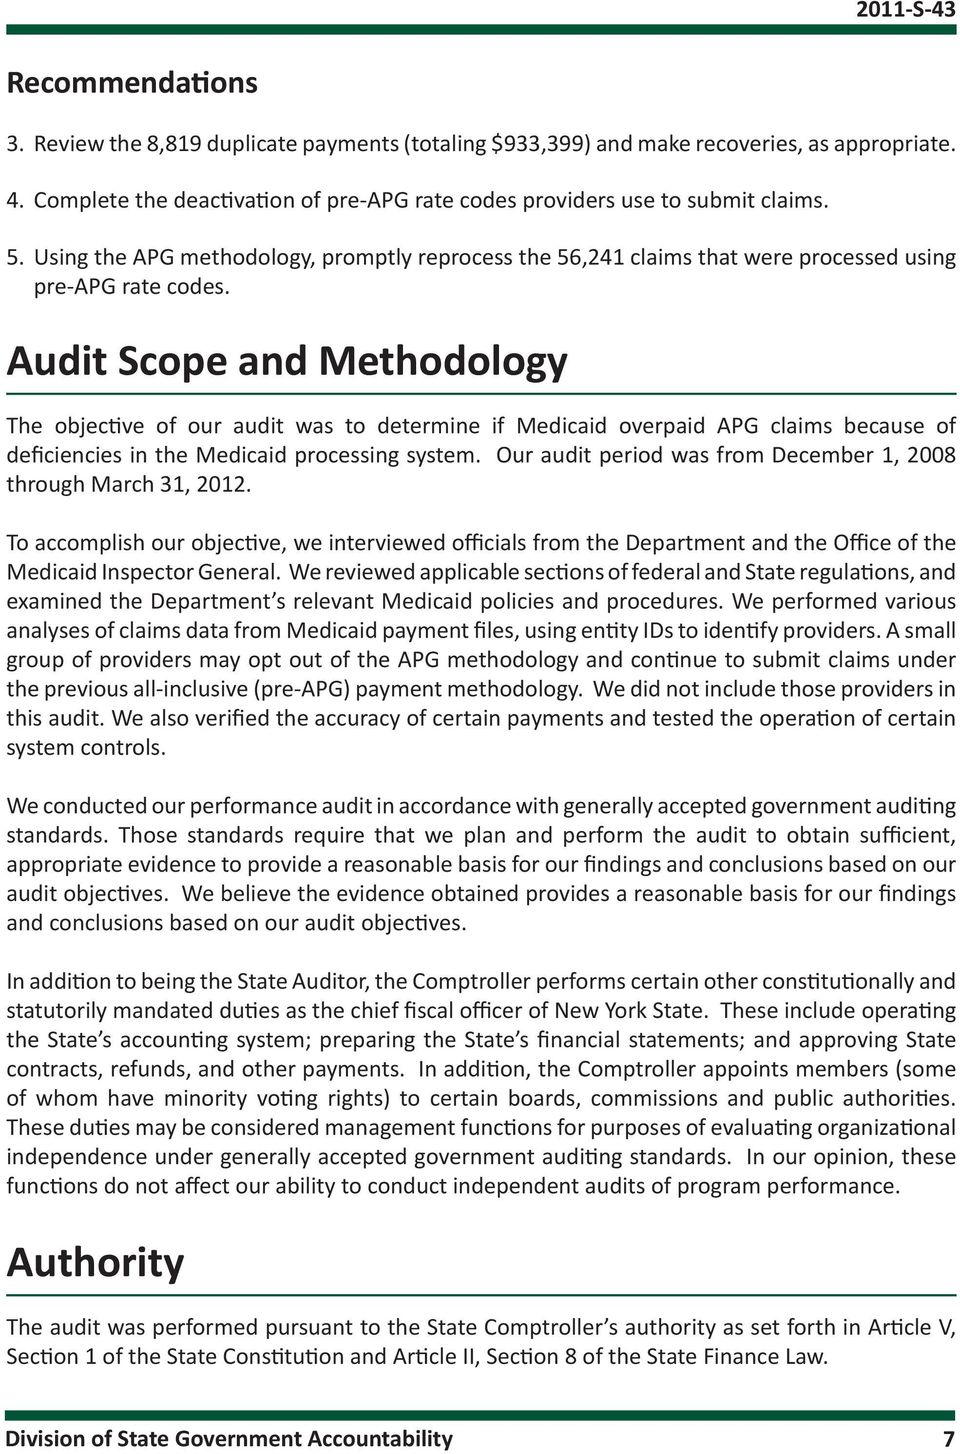 Audit Scope and Methodology The objective of our audit was to determine if Medicaid overpaid APG claims because of deficiencies in the Medicaid processing system.